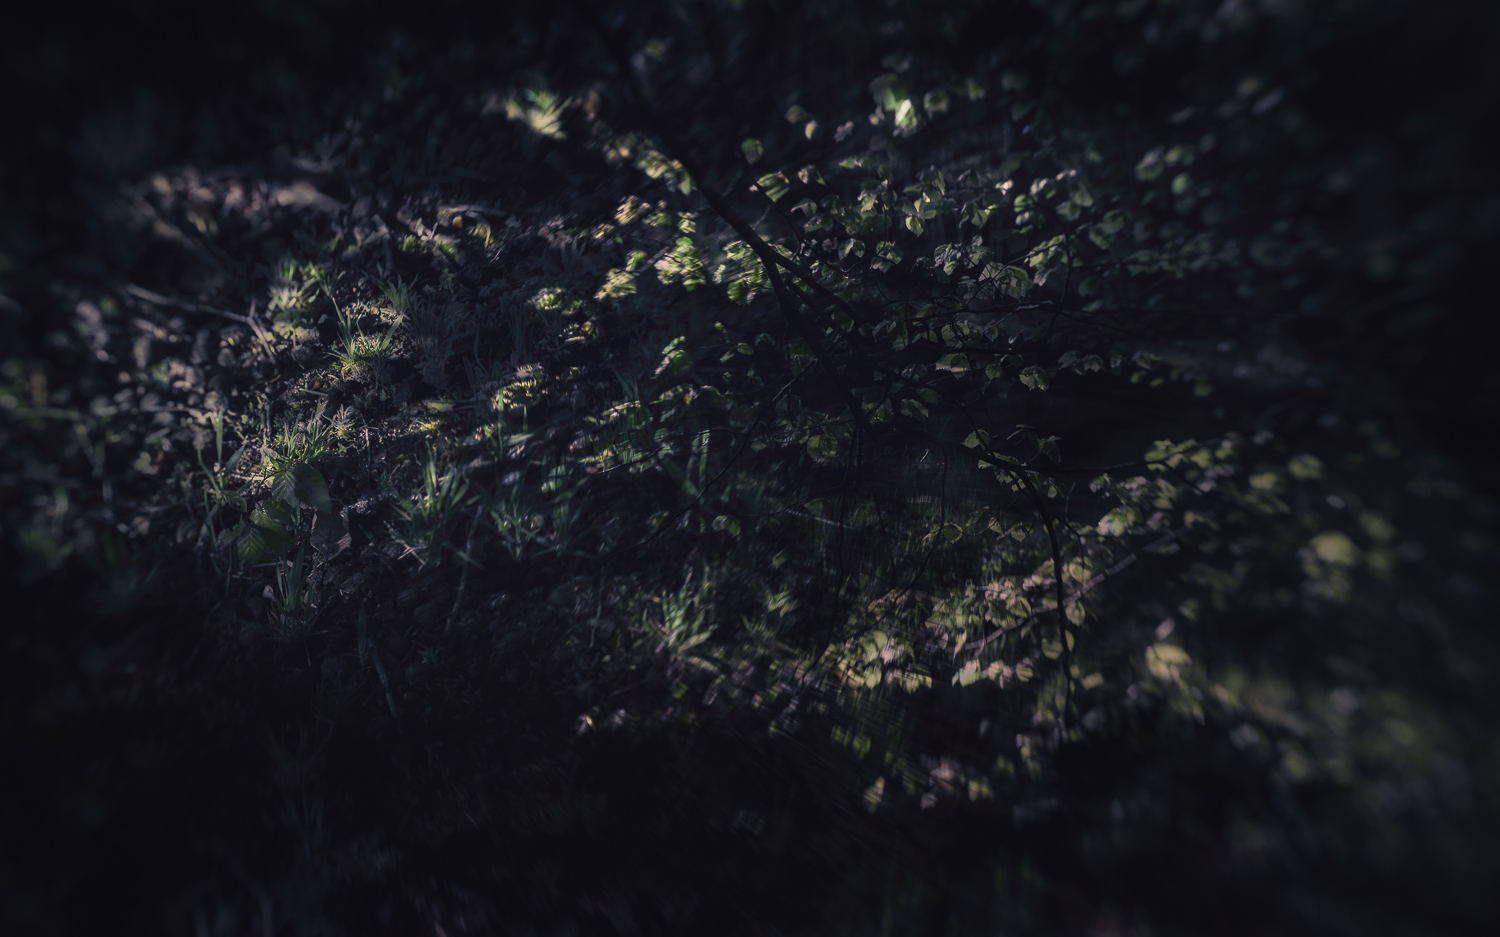 Putting the multiple exposure app to use in Padley Gorge with wonderful light and green leaves. The lensbaby composer really helped to pick out key areas of focus in this shot (and Doug's pencil trick - no, no that one - worked a treat).